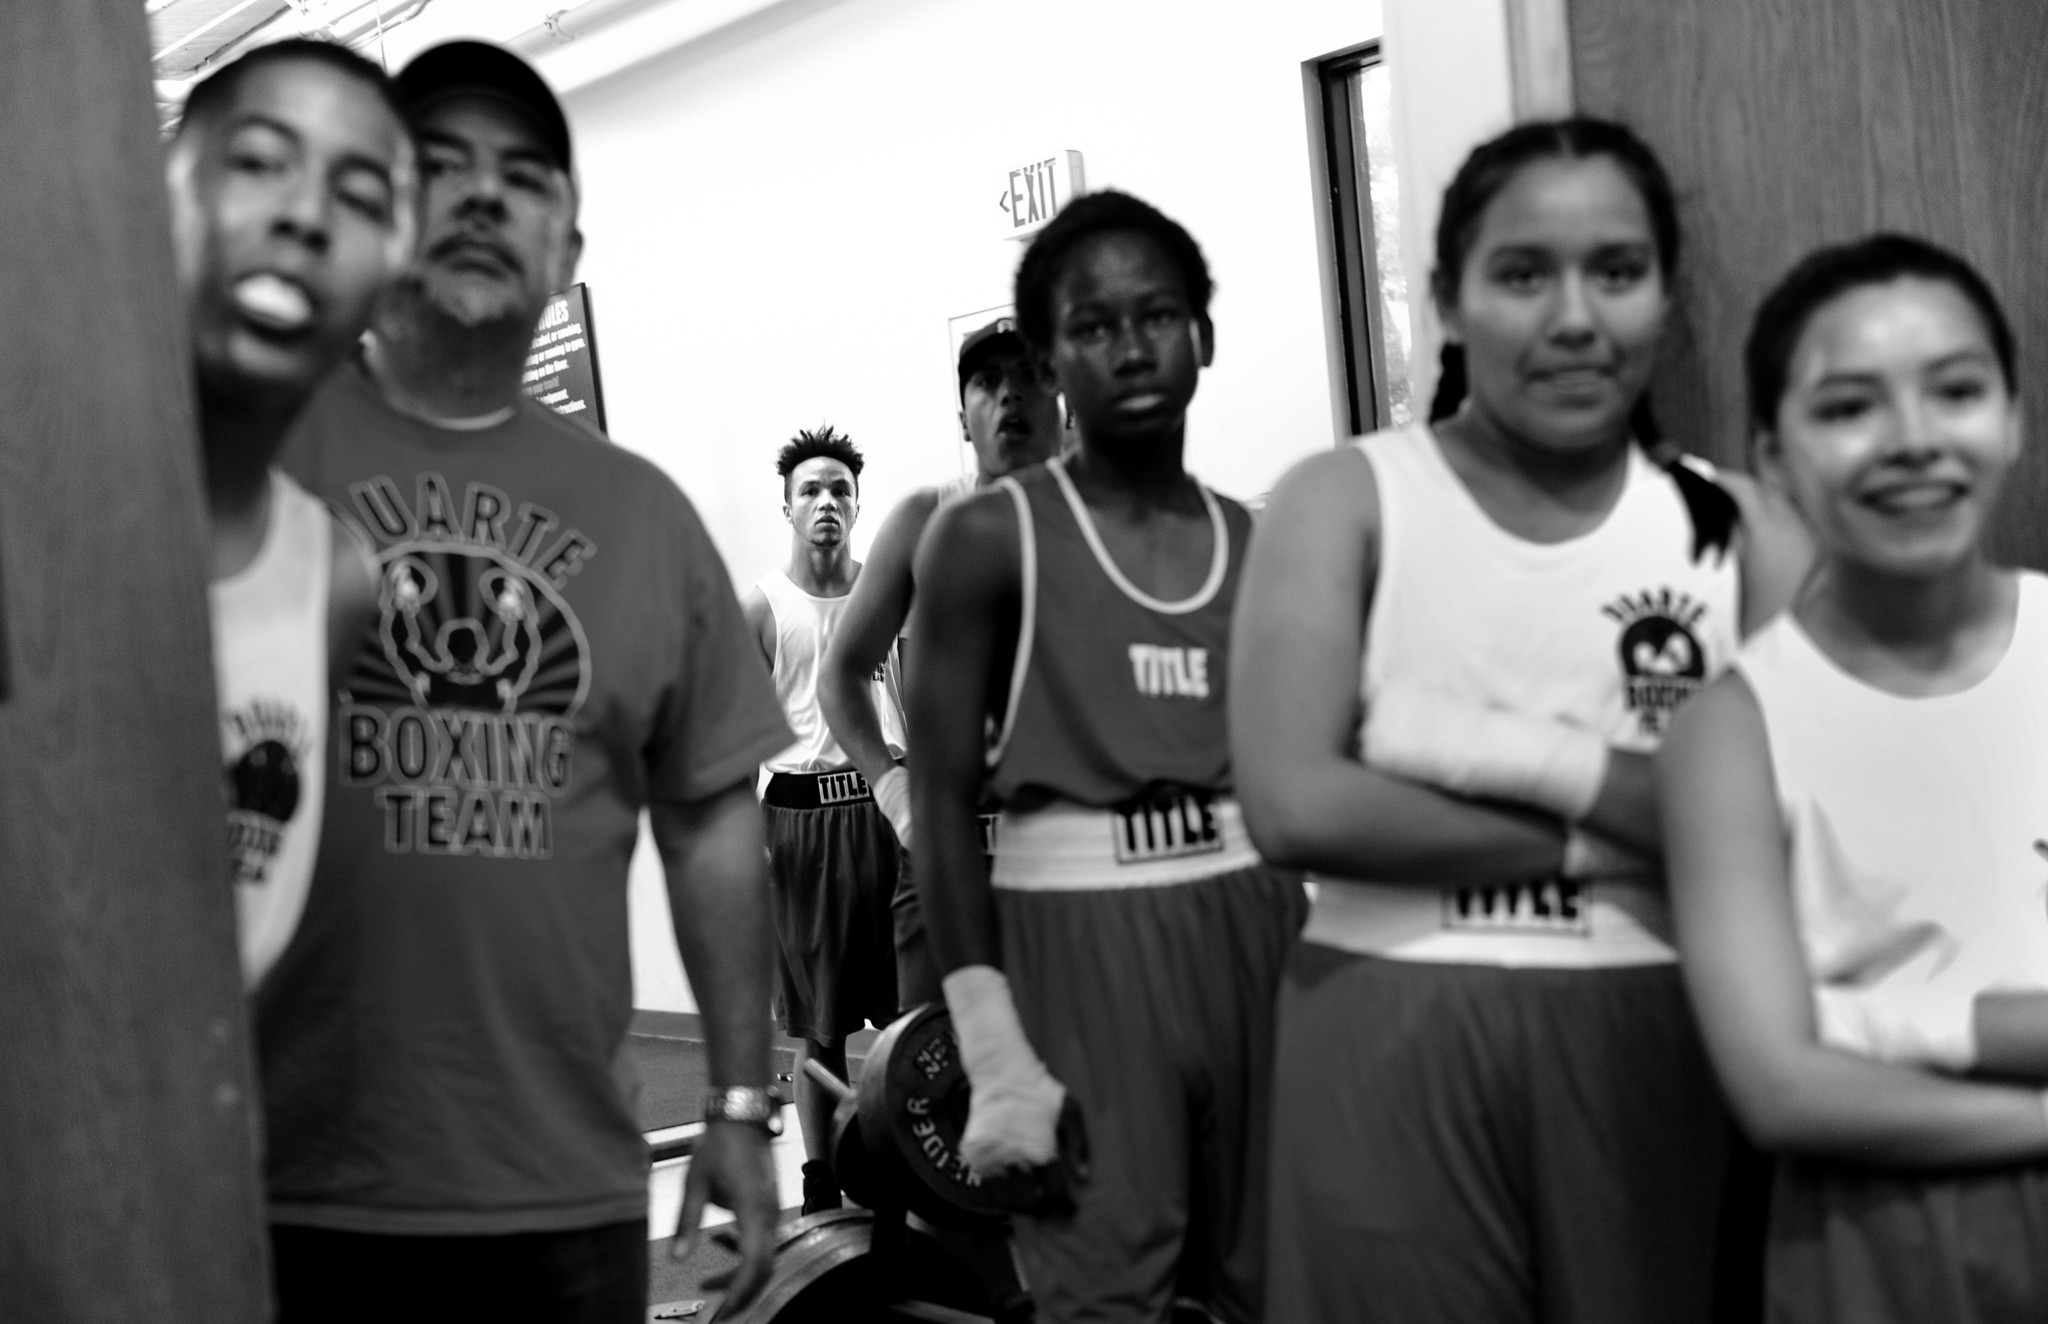 Pat Manuel watches a bout before stepping into the ring for the first time as a male during an exhibition match.